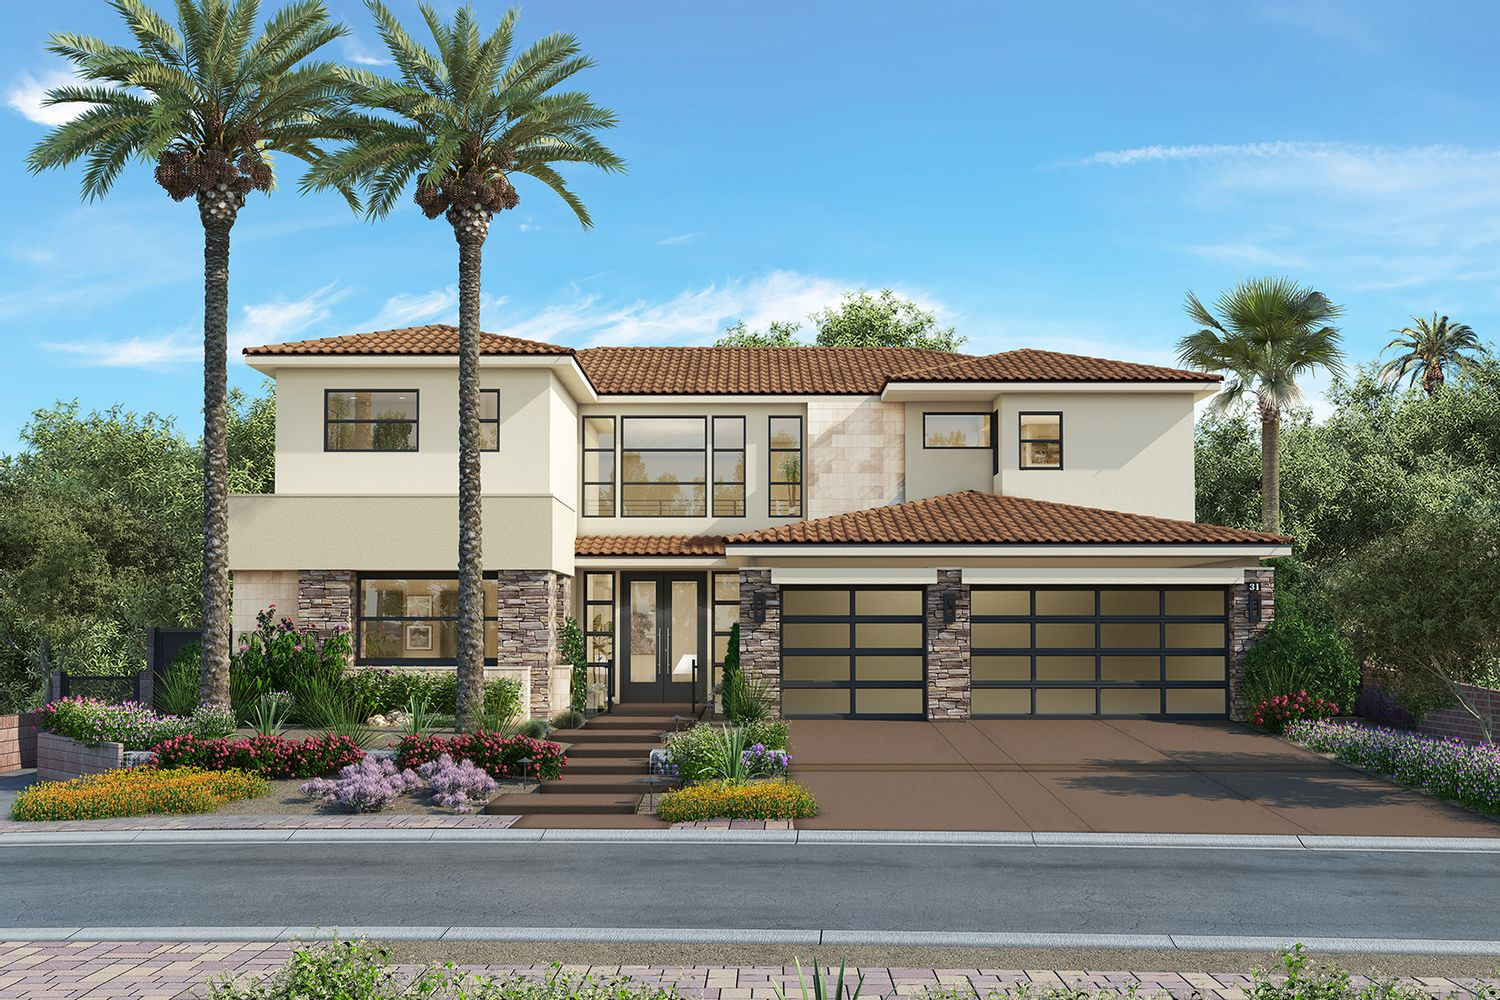 Single Family for Sale at Lago Vista - Plan 2 58 Bella Lago Ave. Henderson, Nevada 89011 United States